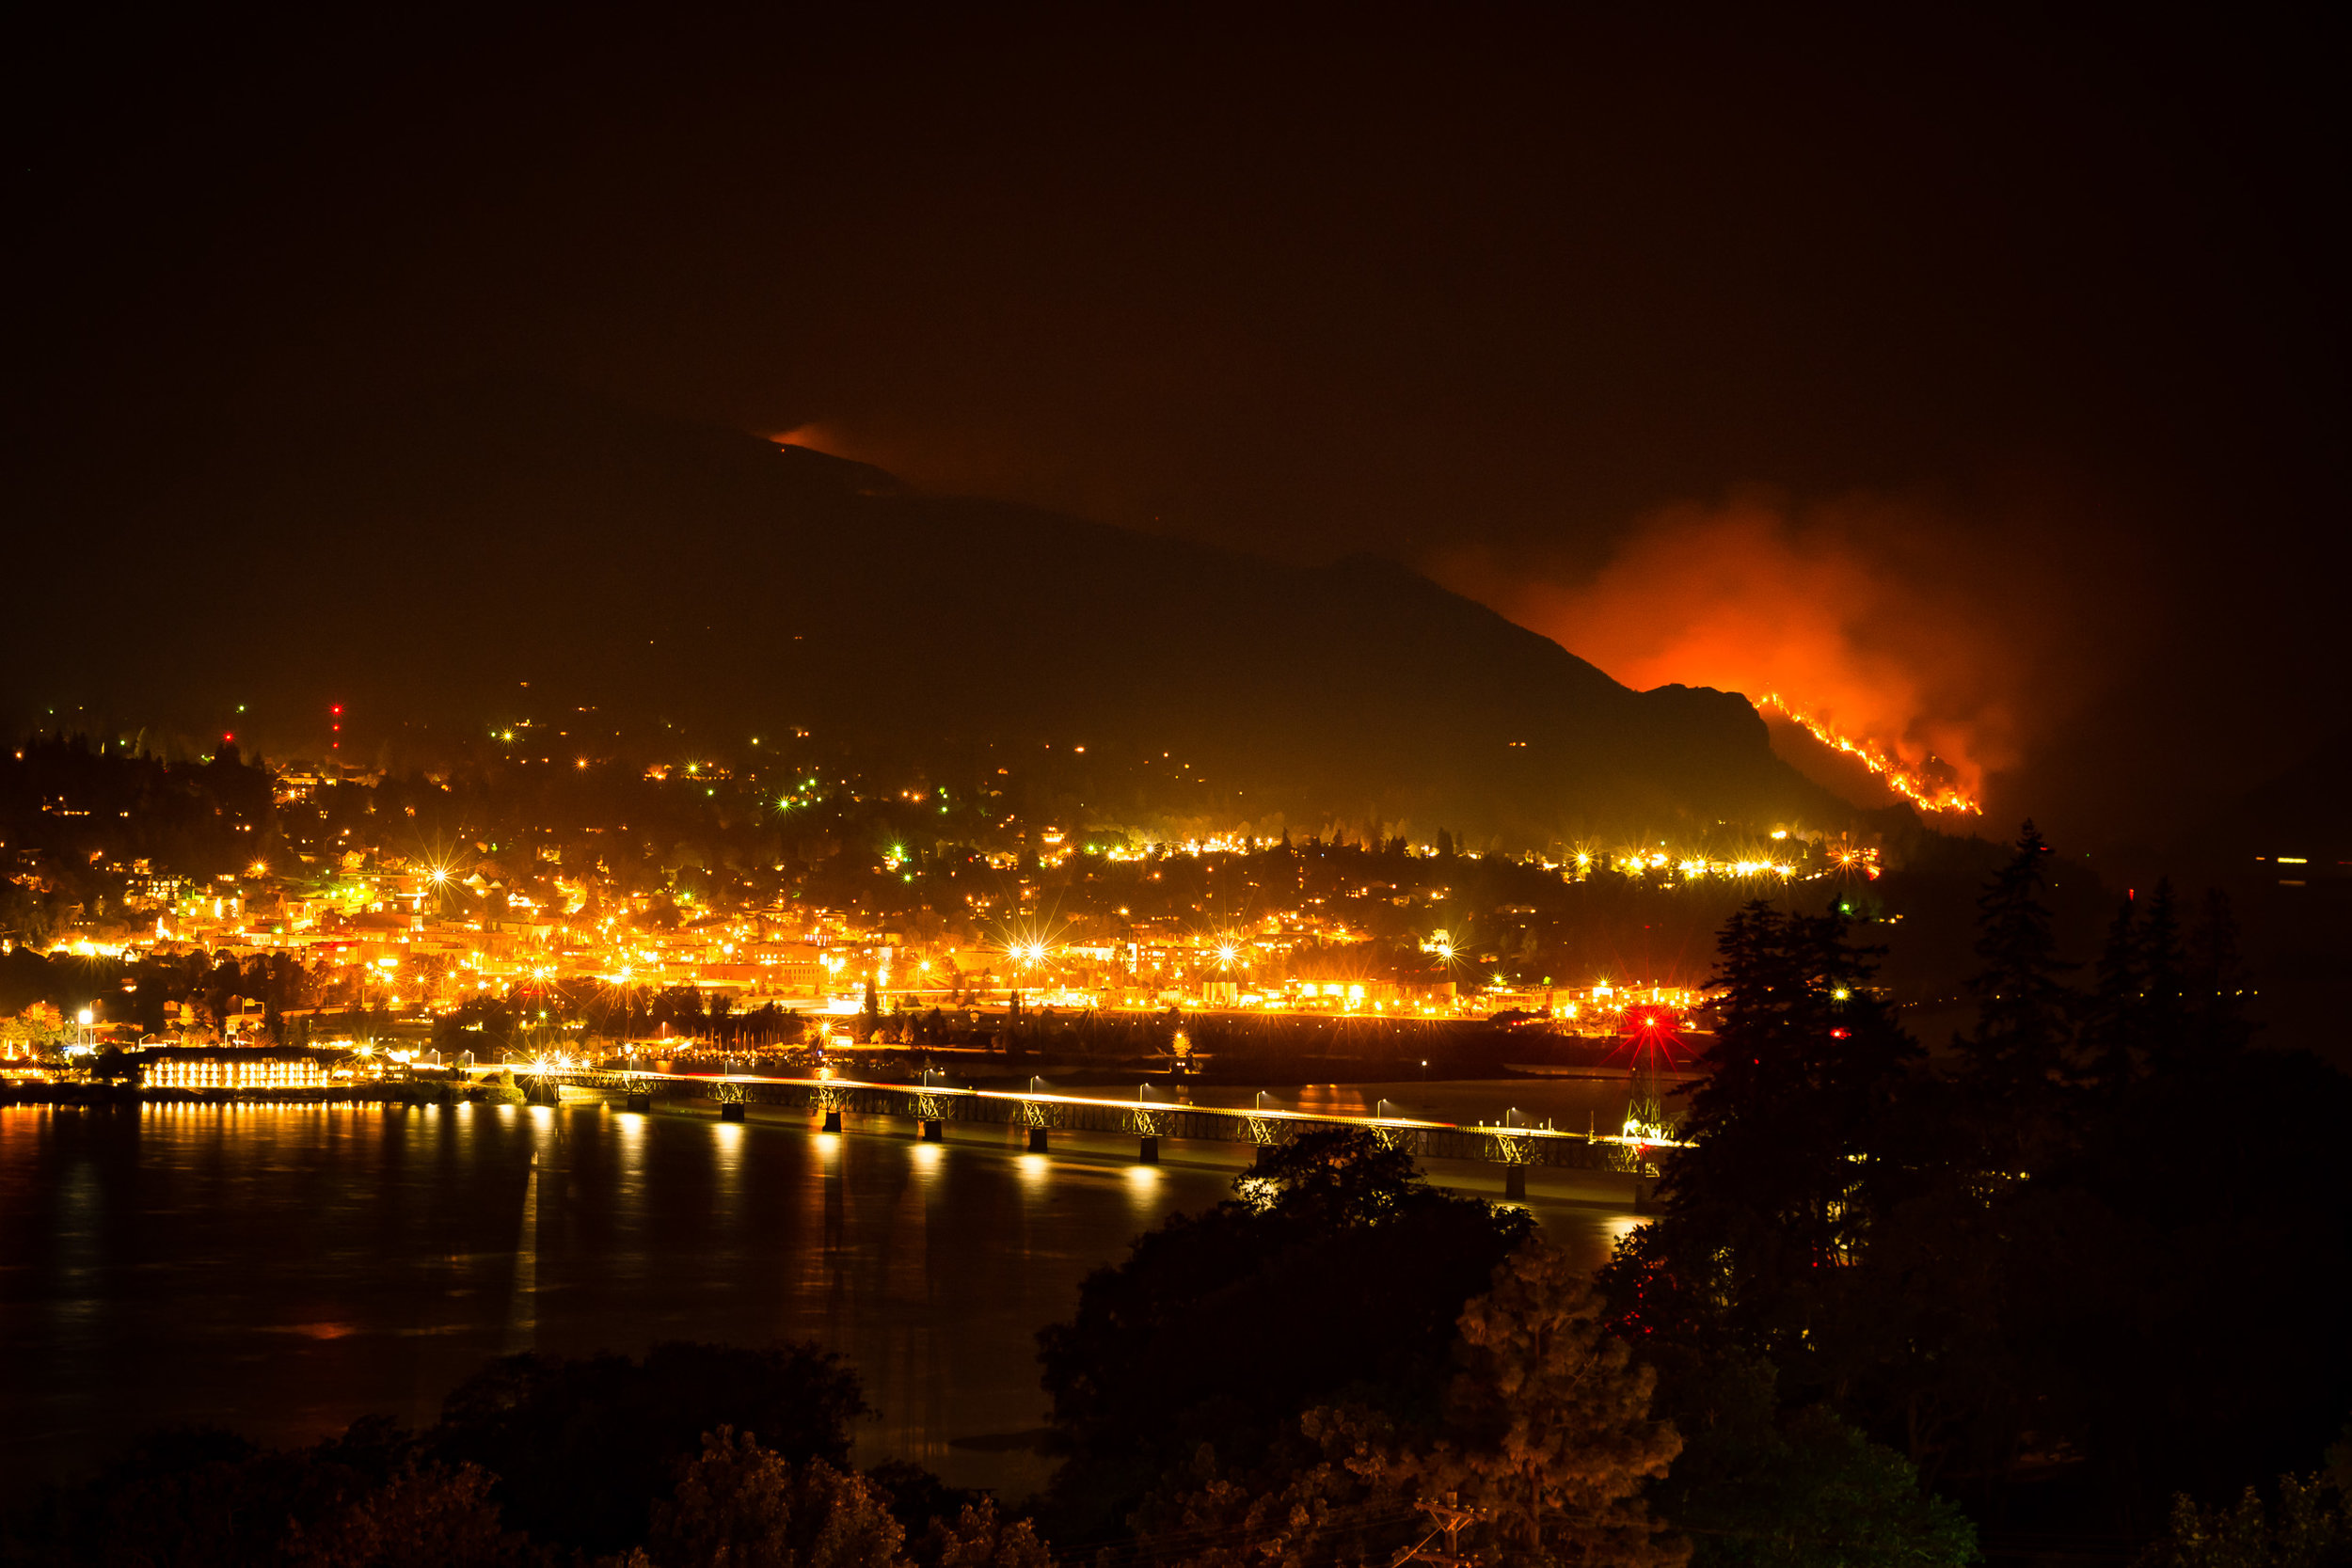 Hood River, OR with the Eagle Creek Fire looming in the distance.